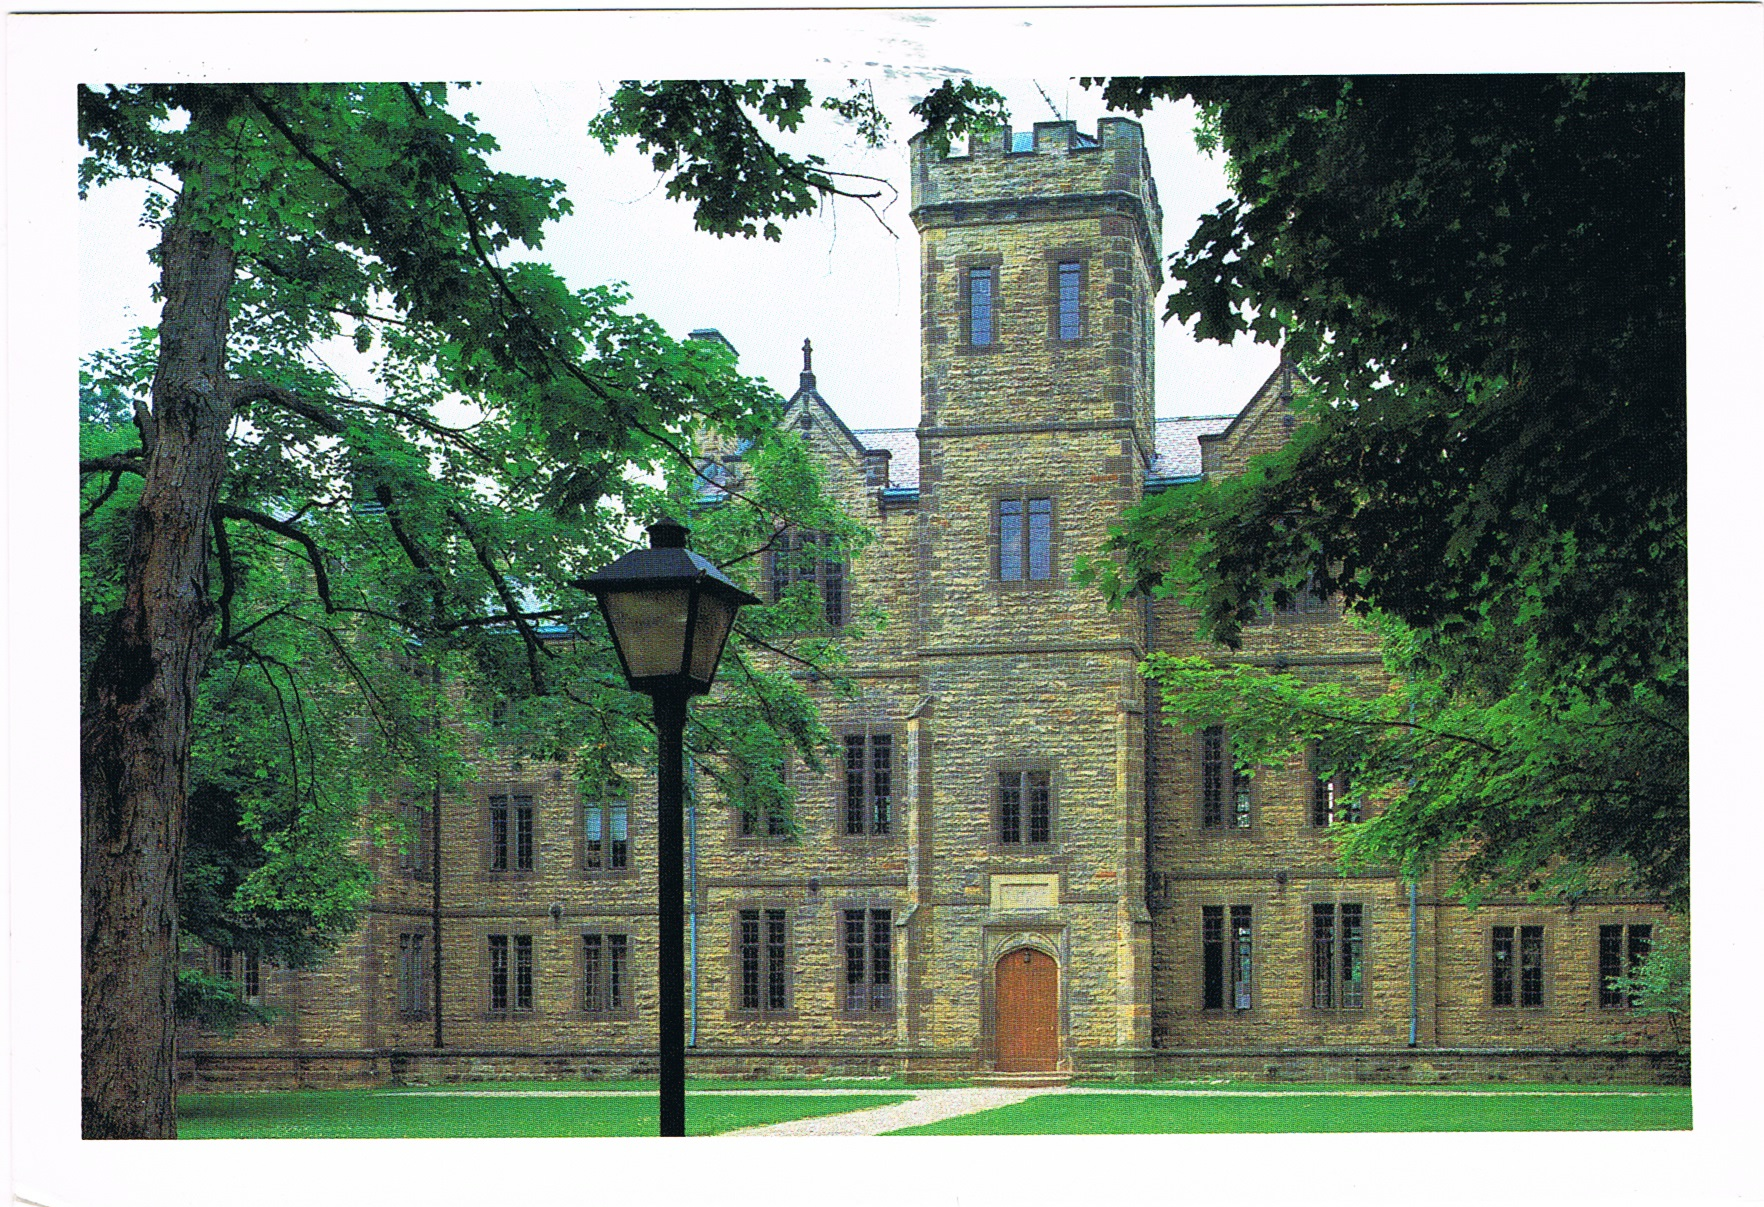 Ascension Hall am Kenyon College in Gambier, Ohio